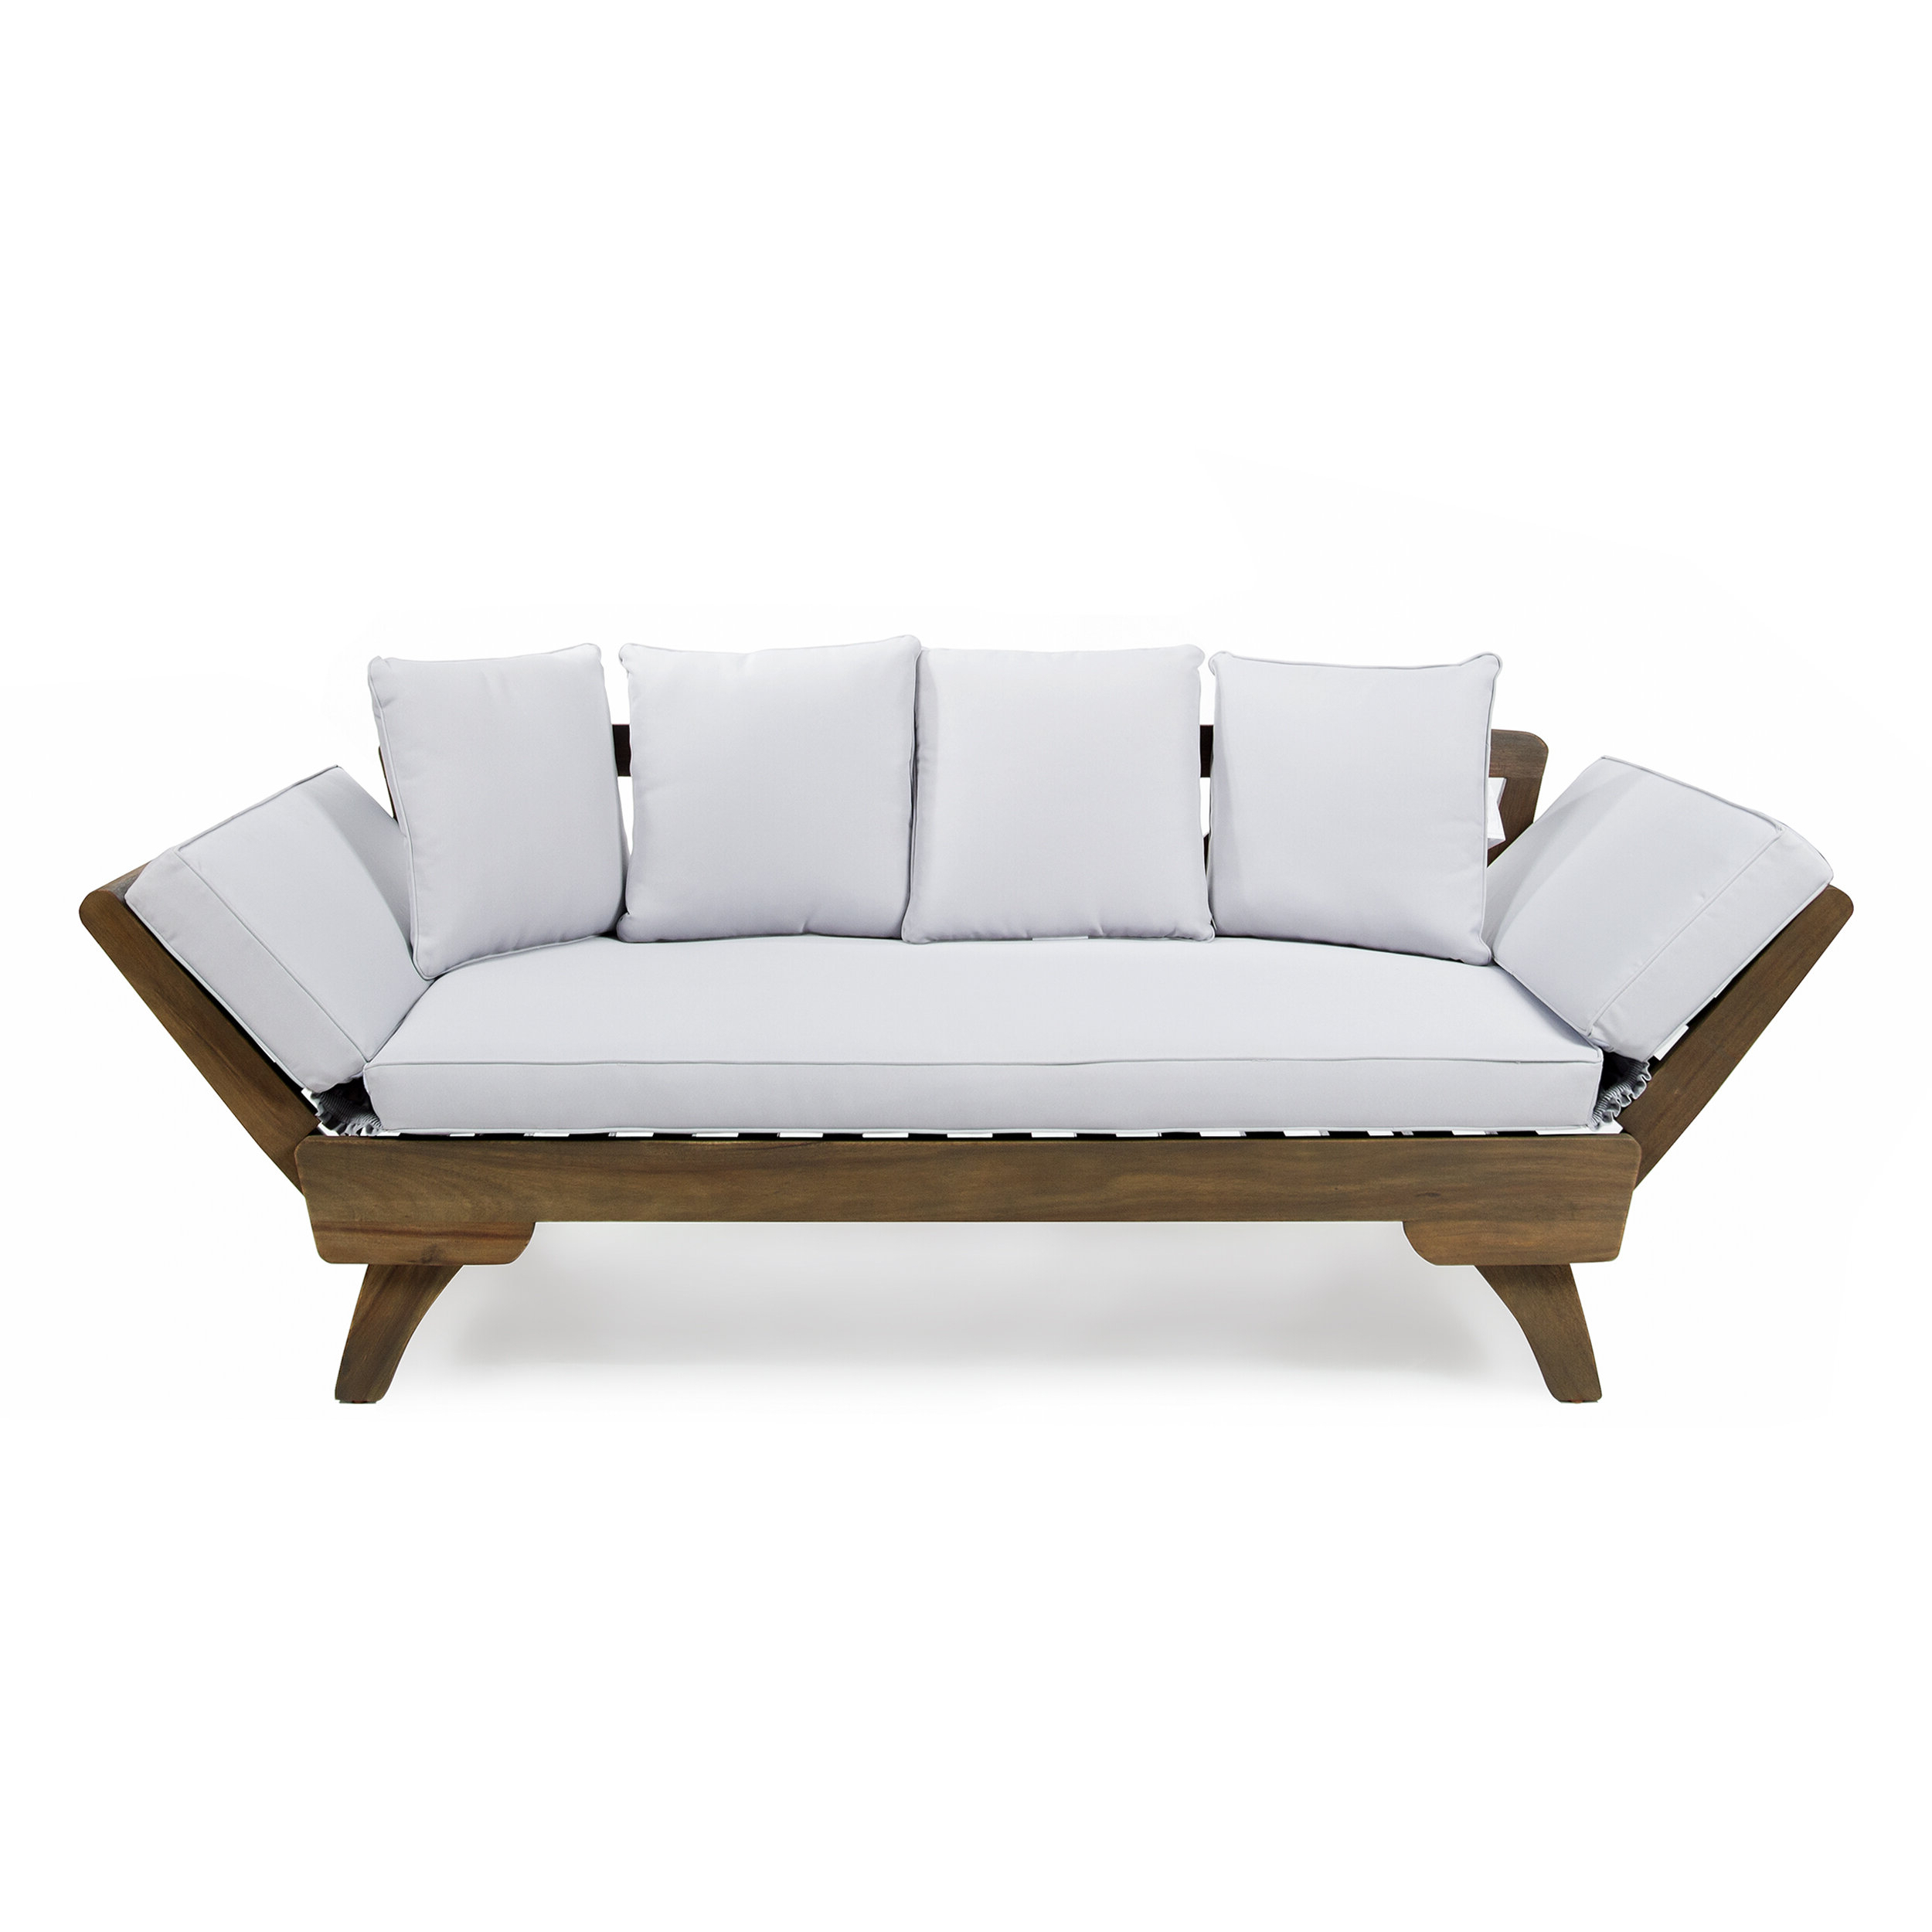 Latest Ellanti Patio Daybed With Cushions Regarding Ellanti Patio Daybeds With Cushions (Gallery 1 of 25)